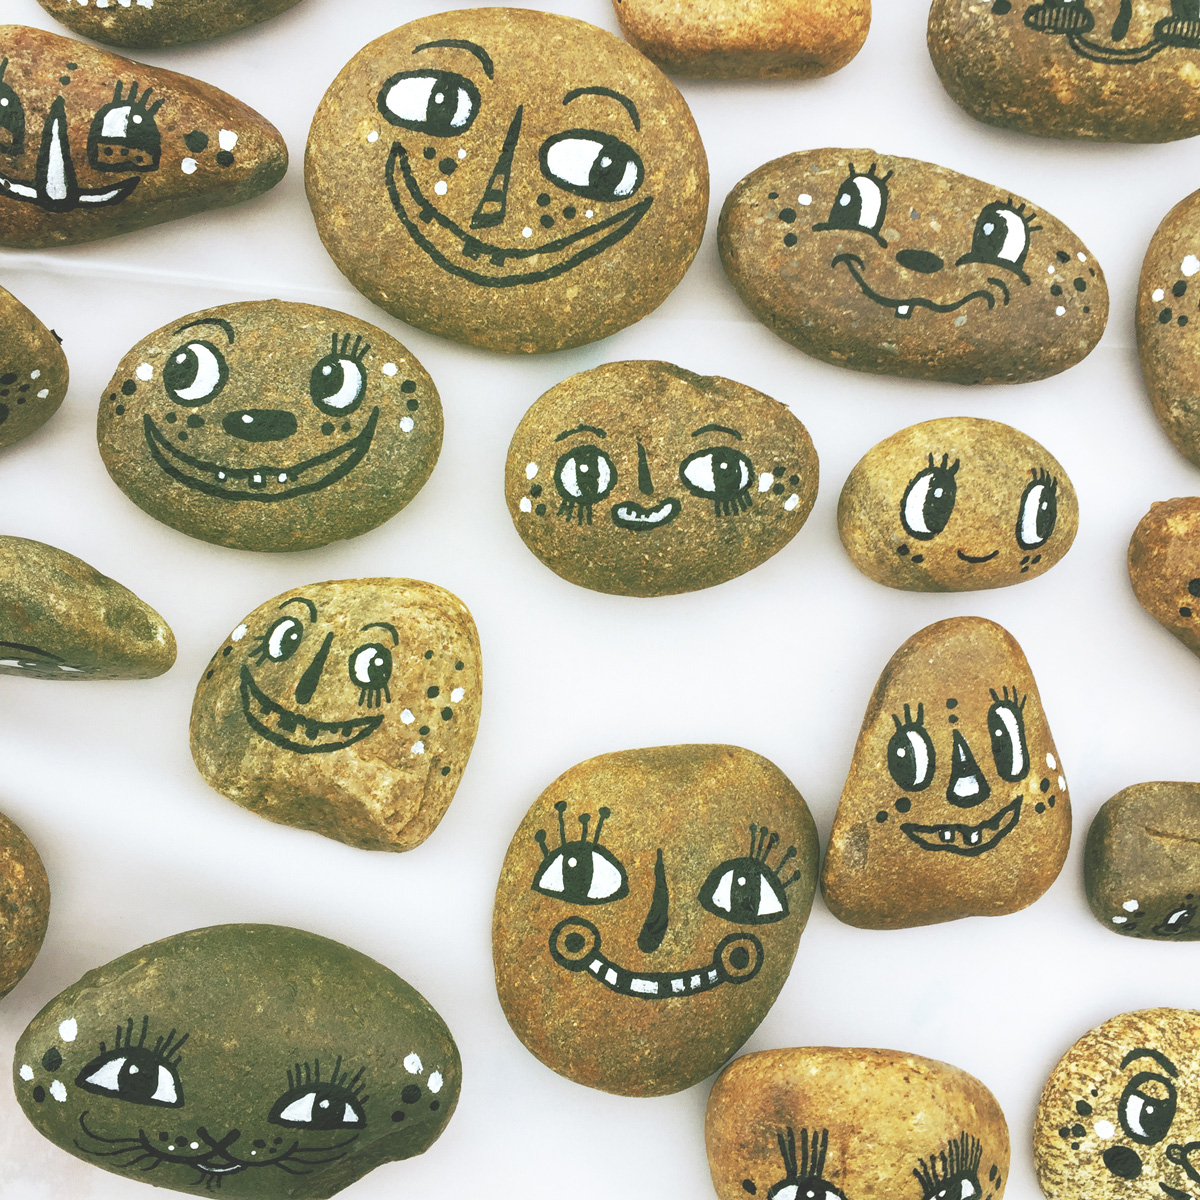 - BlackCatTips painted stones rocks faces.jpg -03